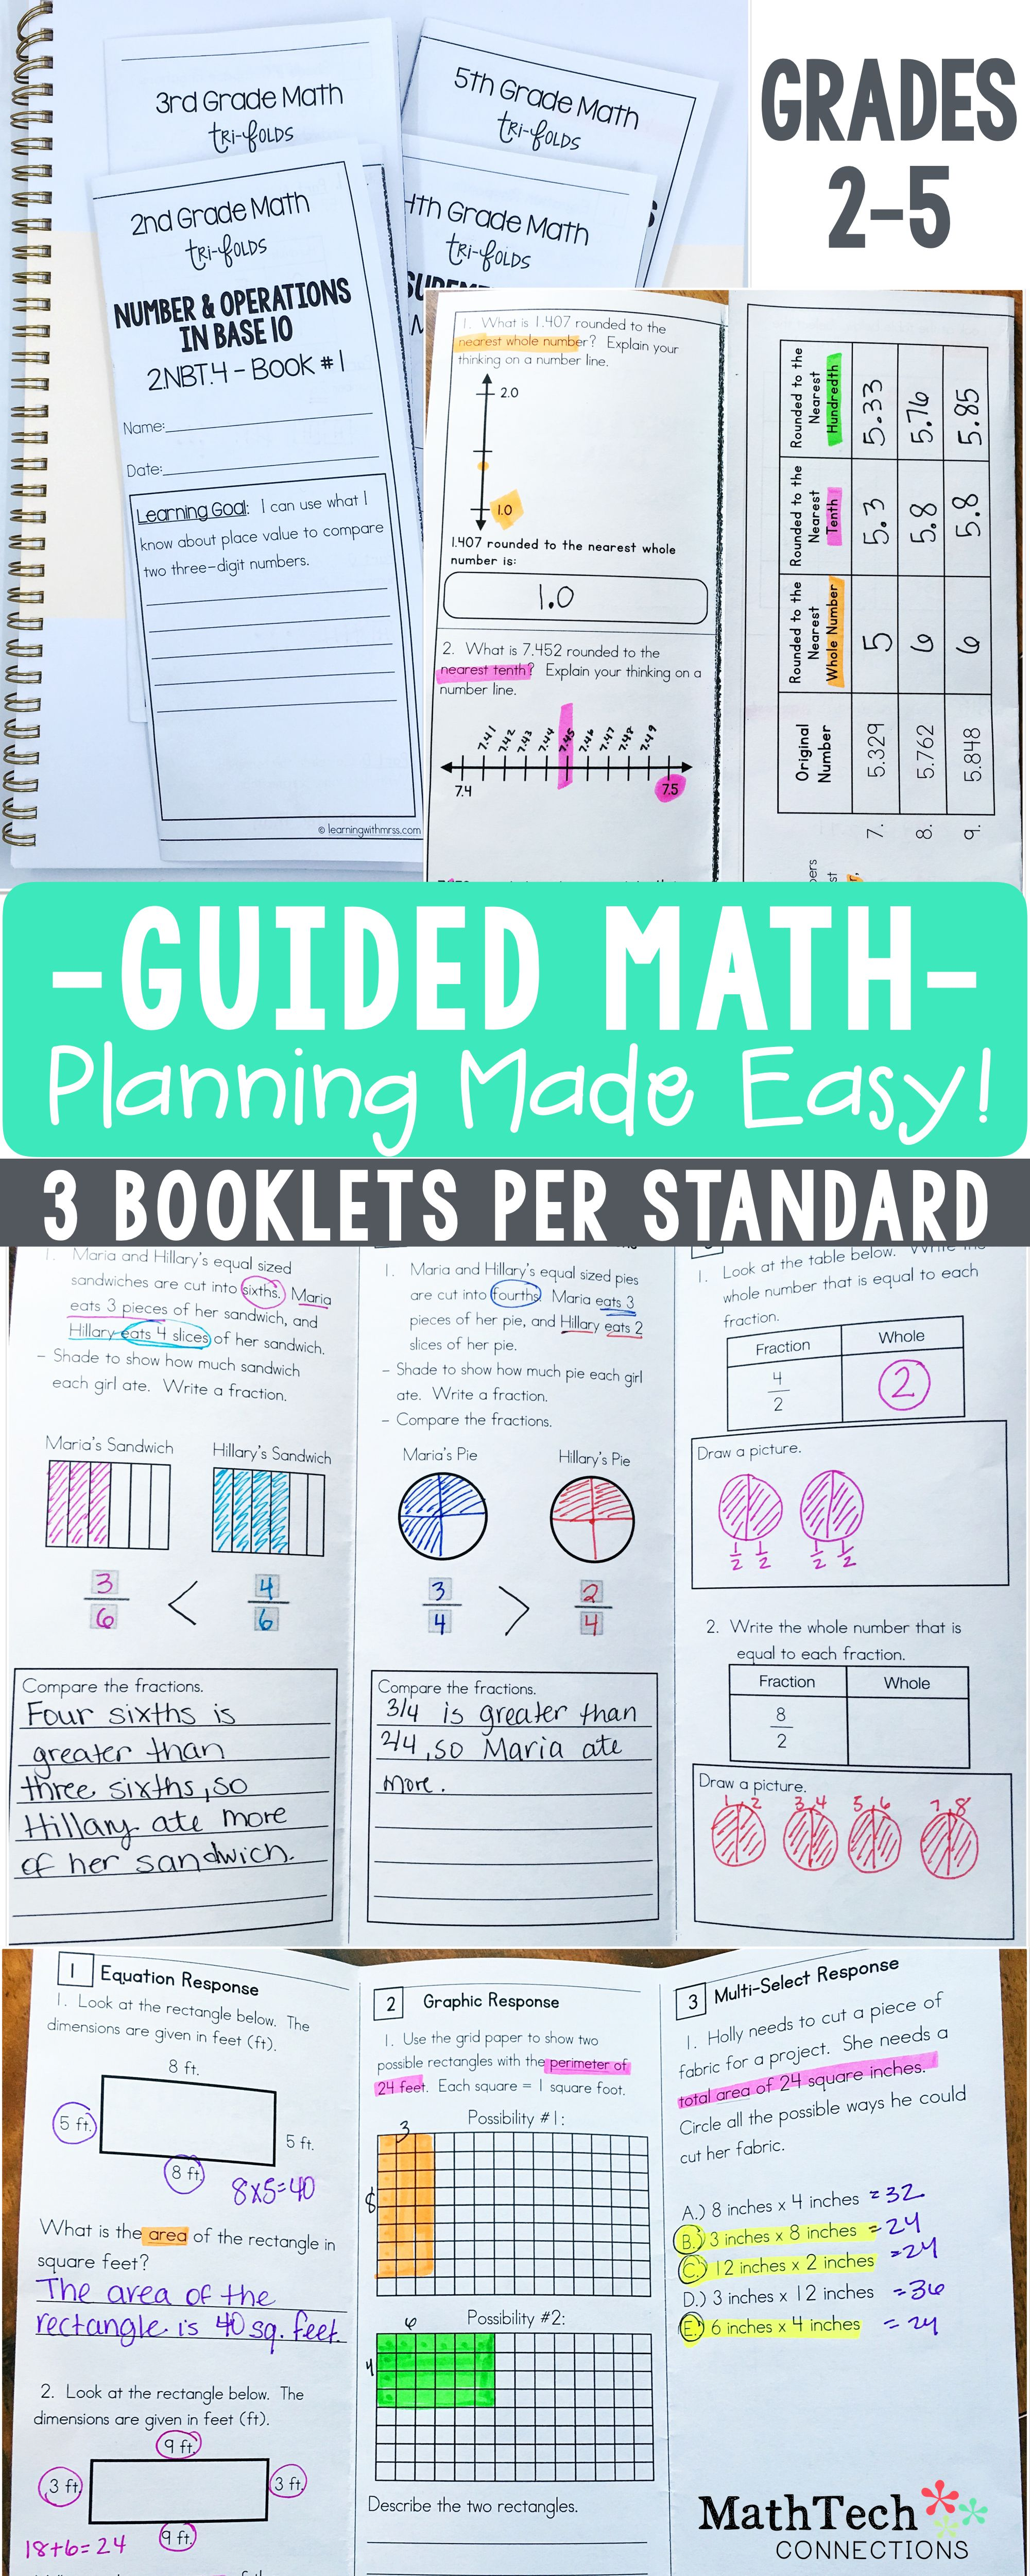 math worksheet : here s an editable template for writing guided math lessons the  : Sharon Wells Math Worksheets